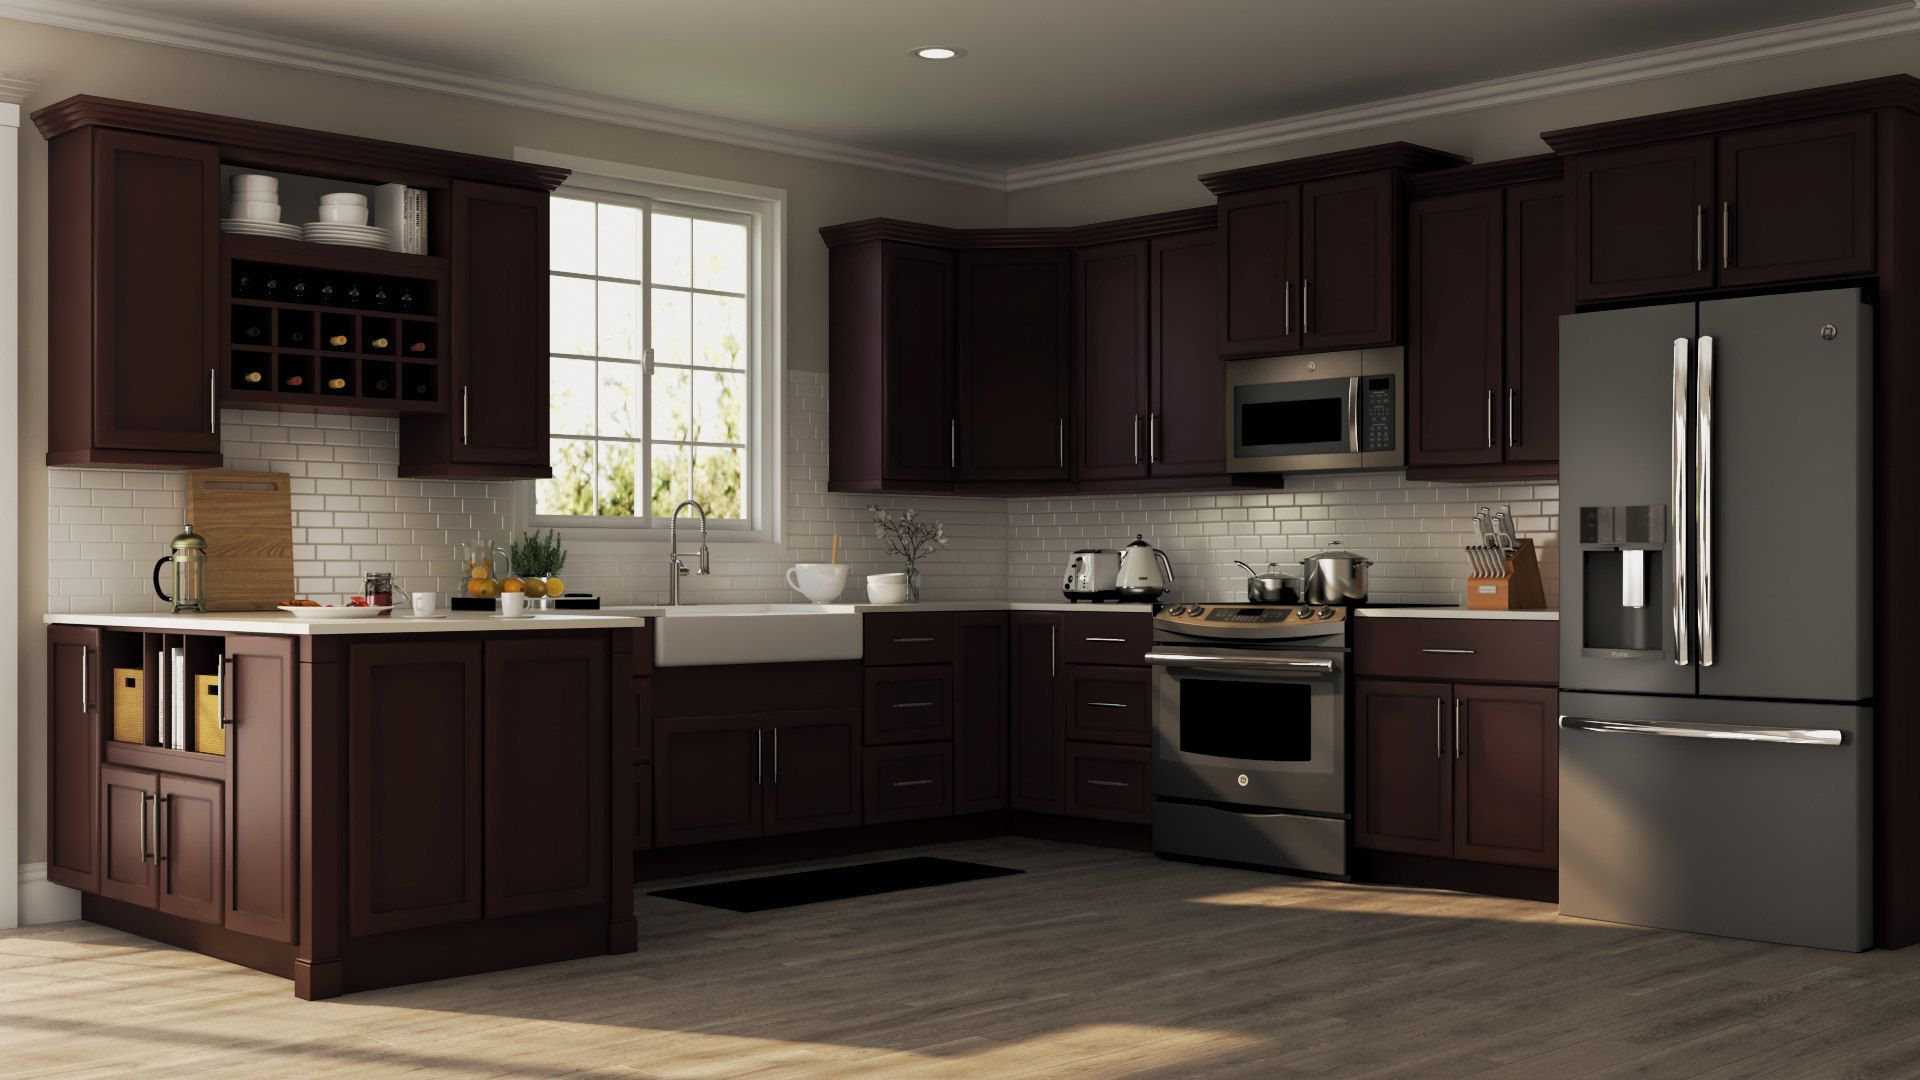 shop our kitchen cabinets department to customize your shaker wall kitchen cabinets in java on kitchen cabinets java id=46730